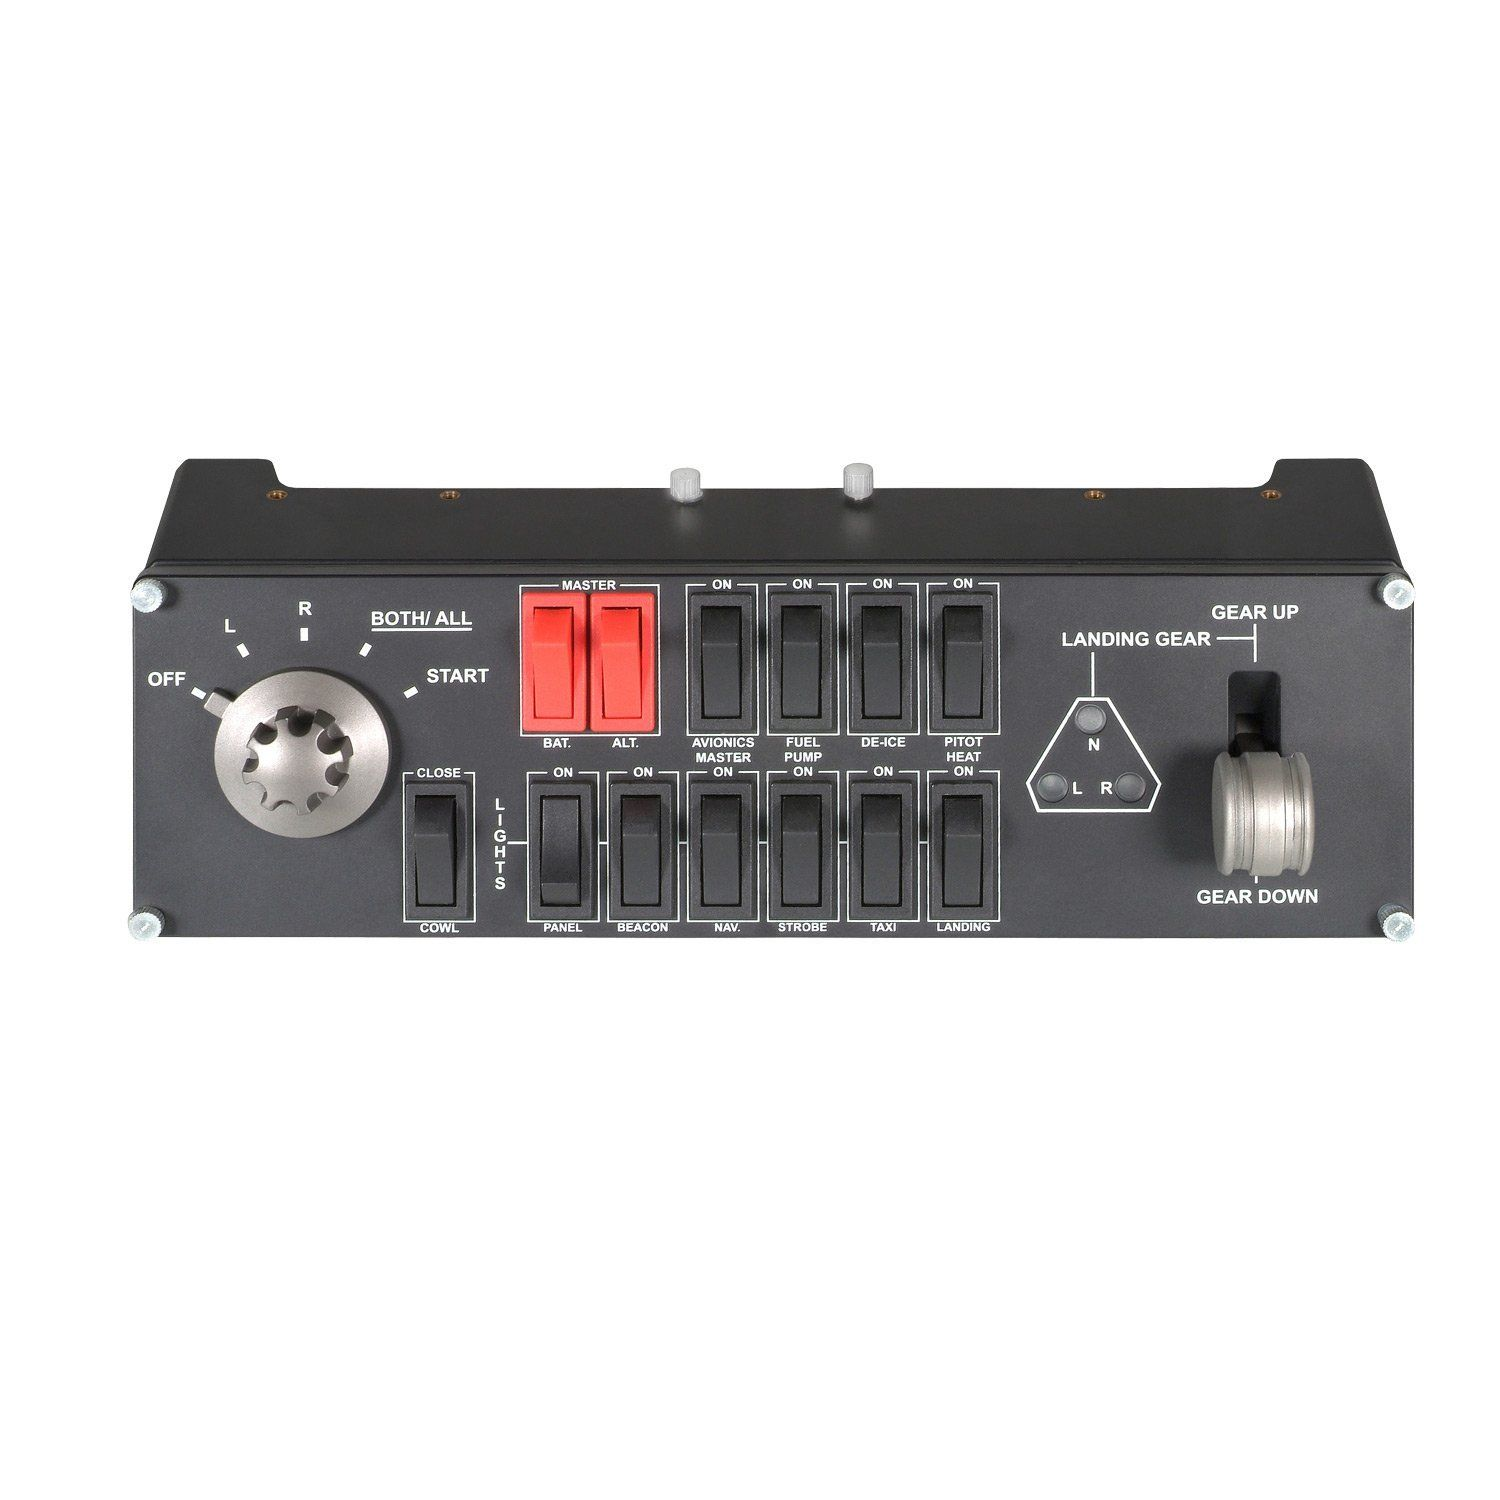 Console Informatique Fly Saitek Pz55 Pro Flight Switch Panel Amazon Fr Informatique